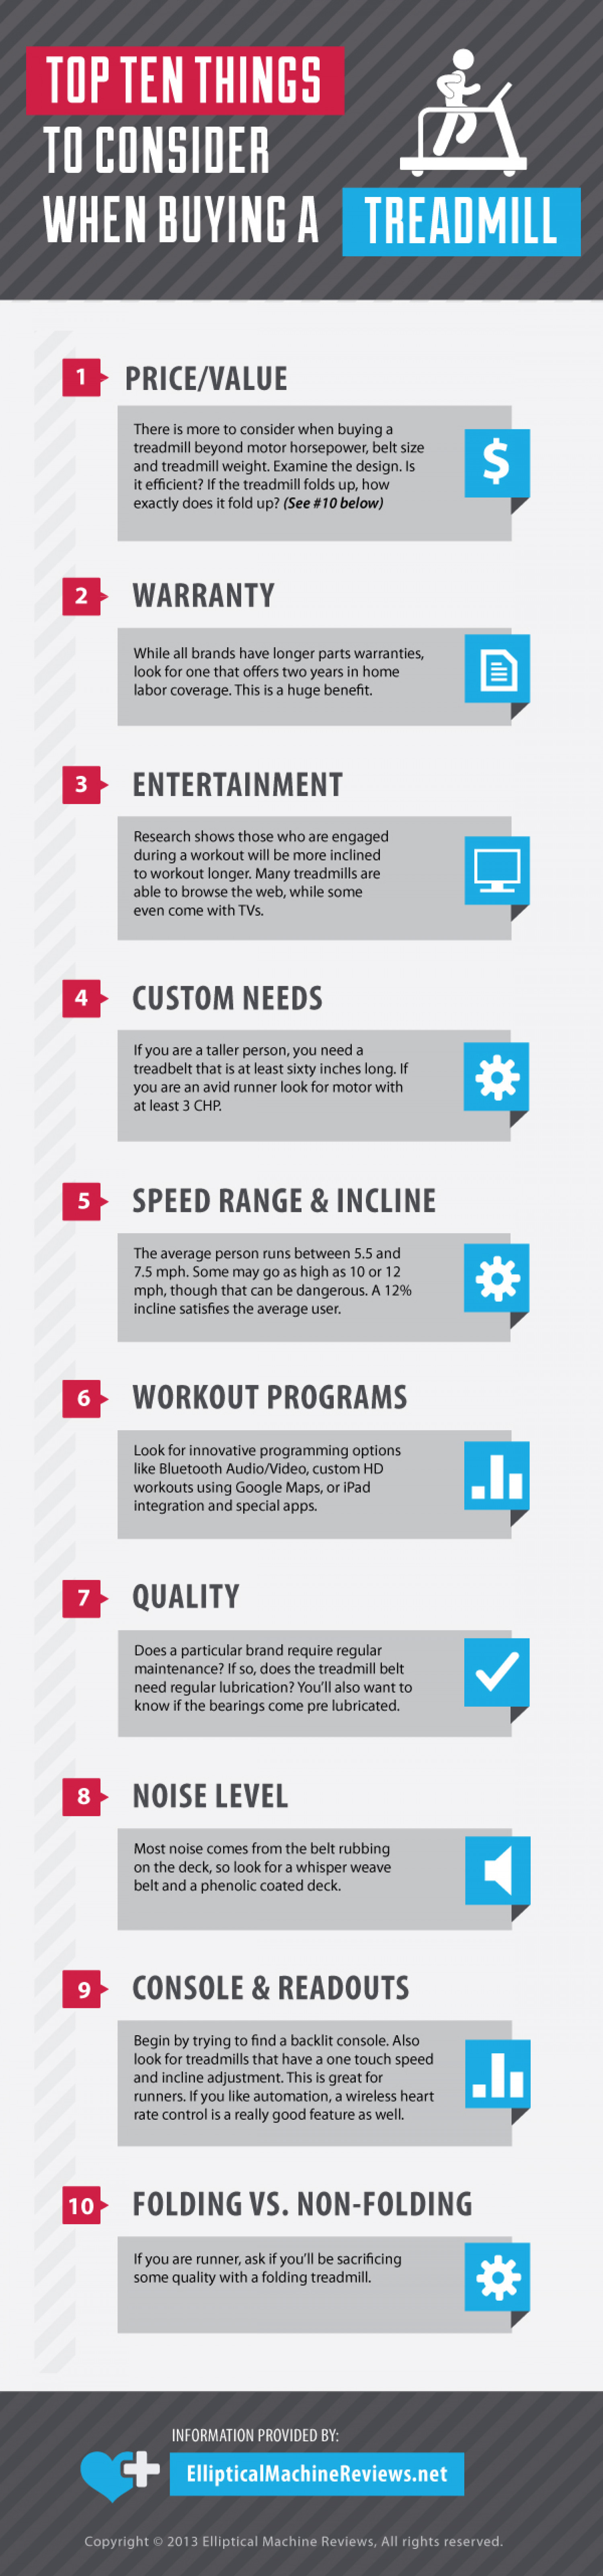 Top Ten Things To Consider When Buying A Treadmill Infographic